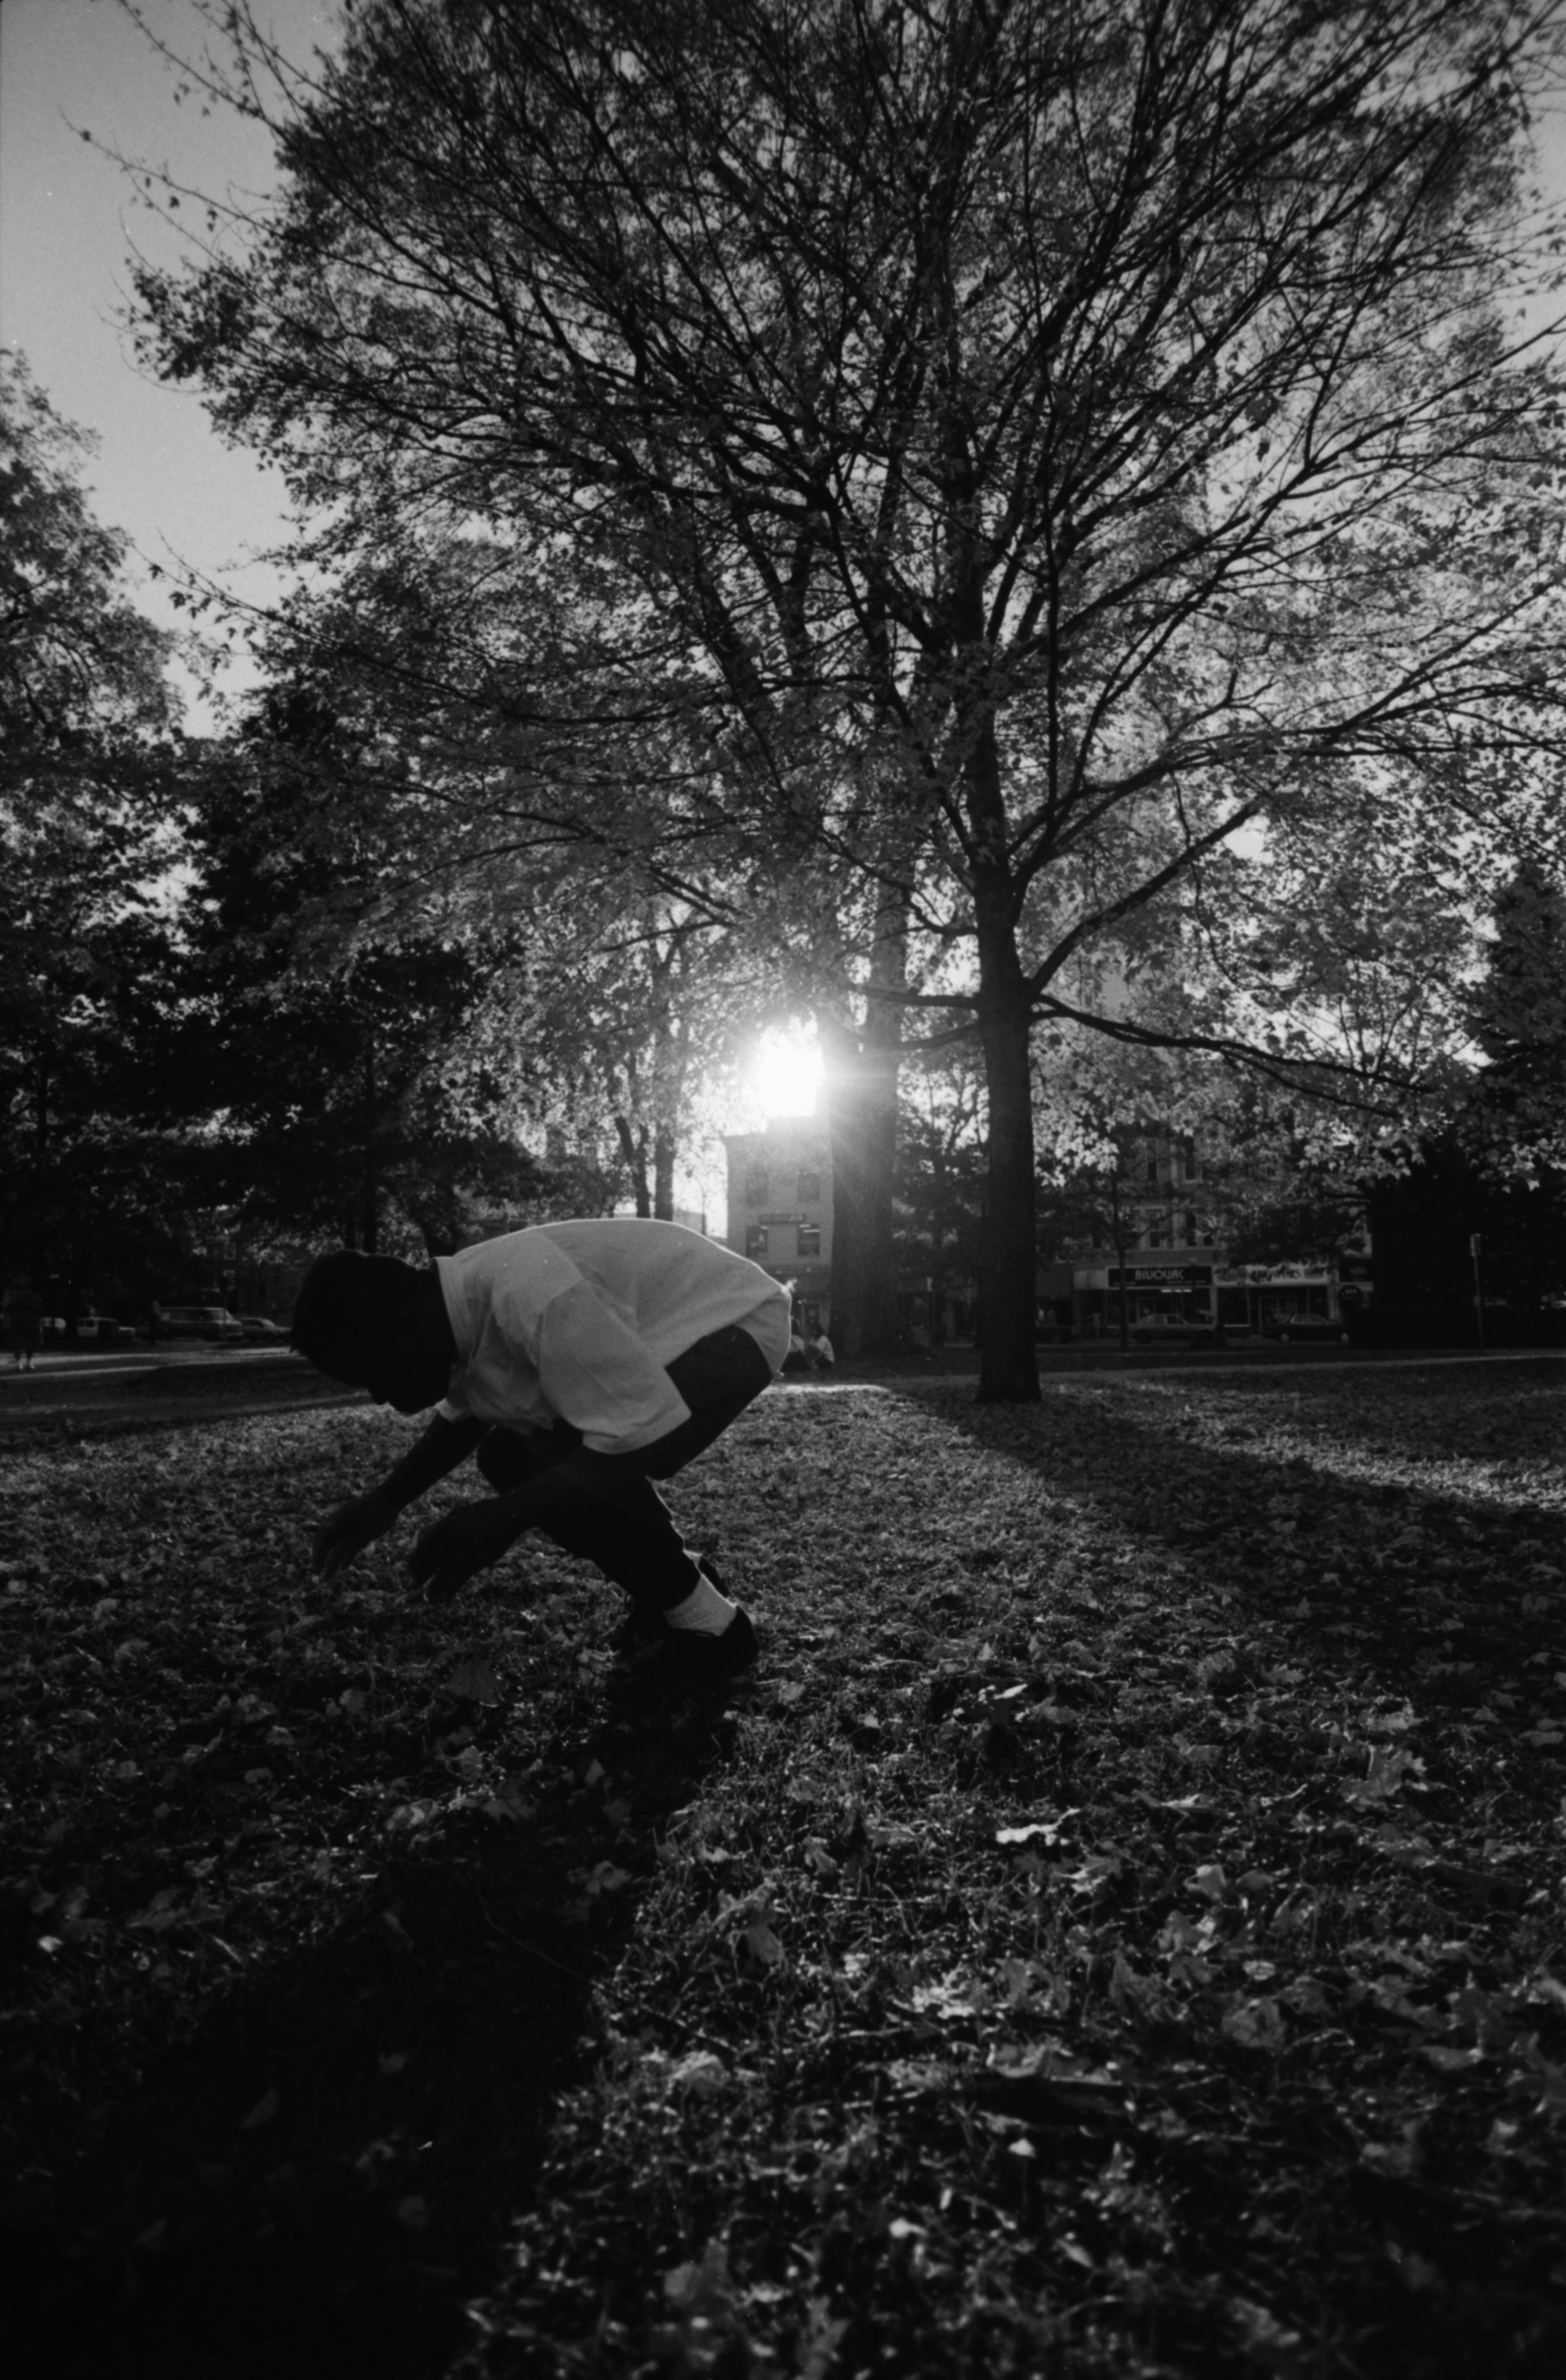 Pioneer High School student Lance Johnson does a back flip on the Diag, October 1989 image